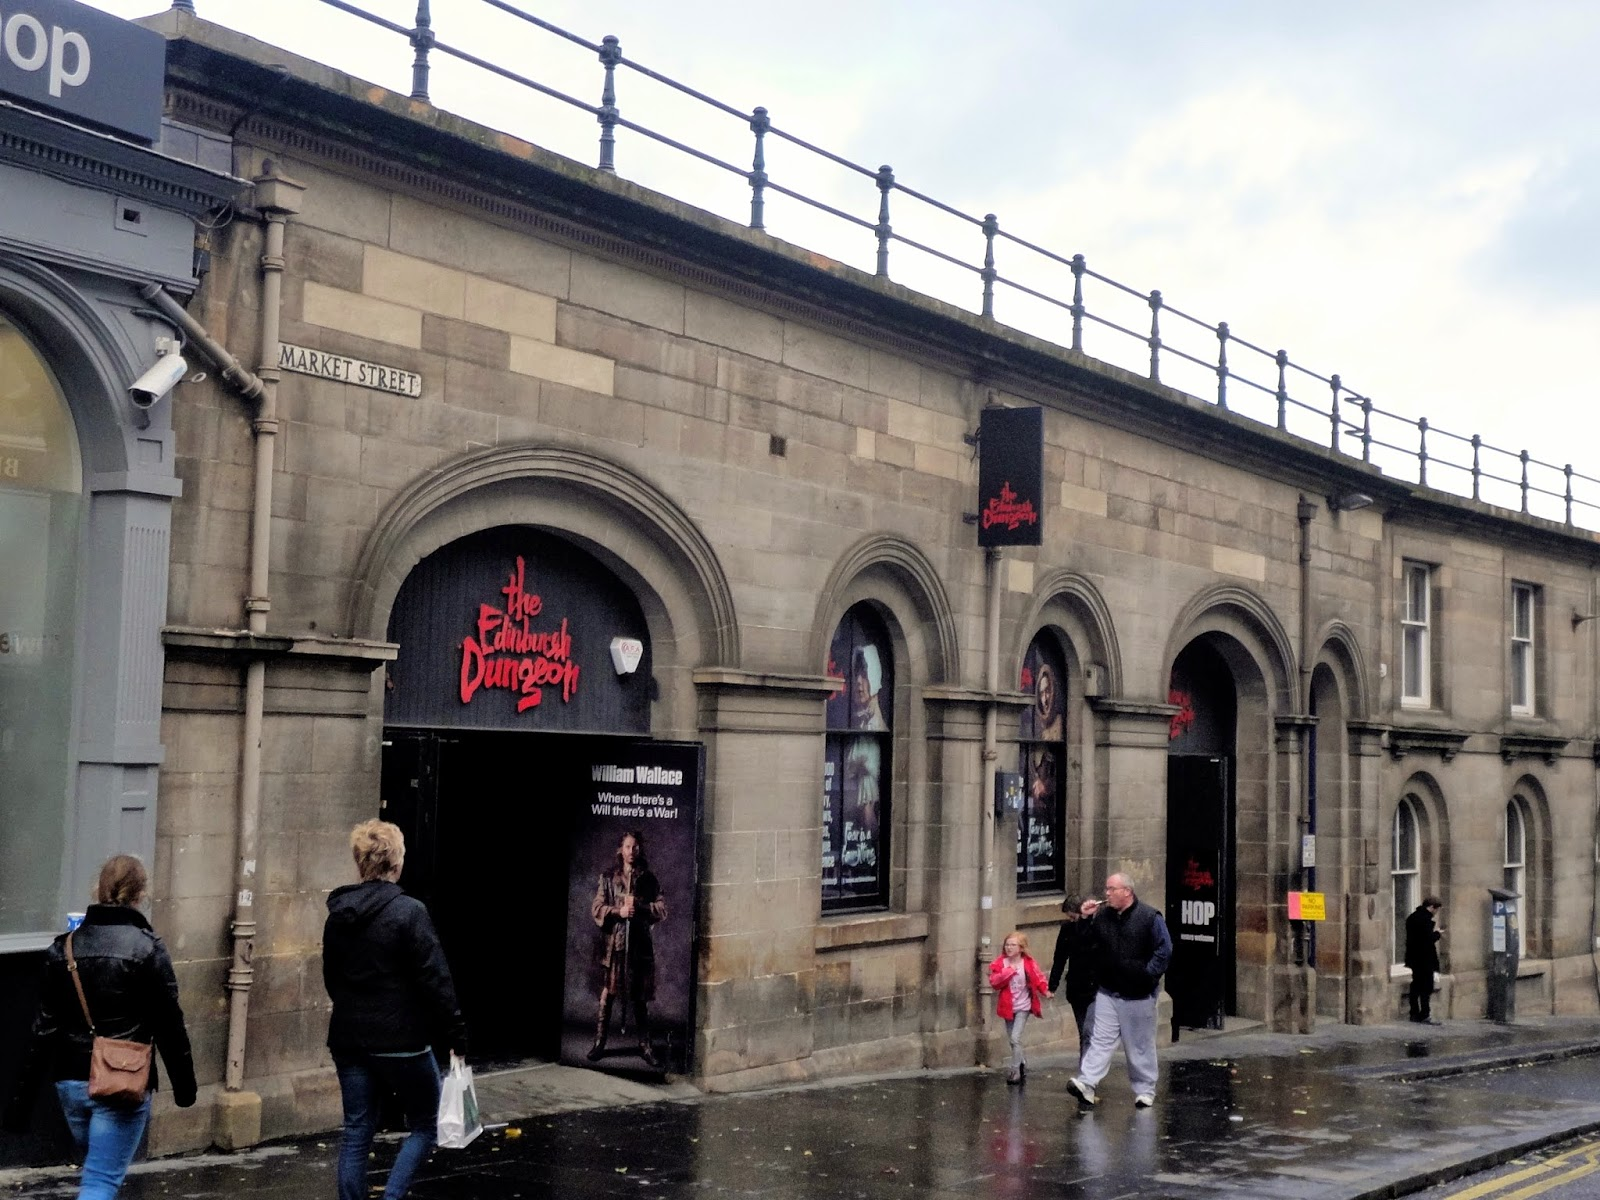 Exterior of the Edinburgh Dungeon